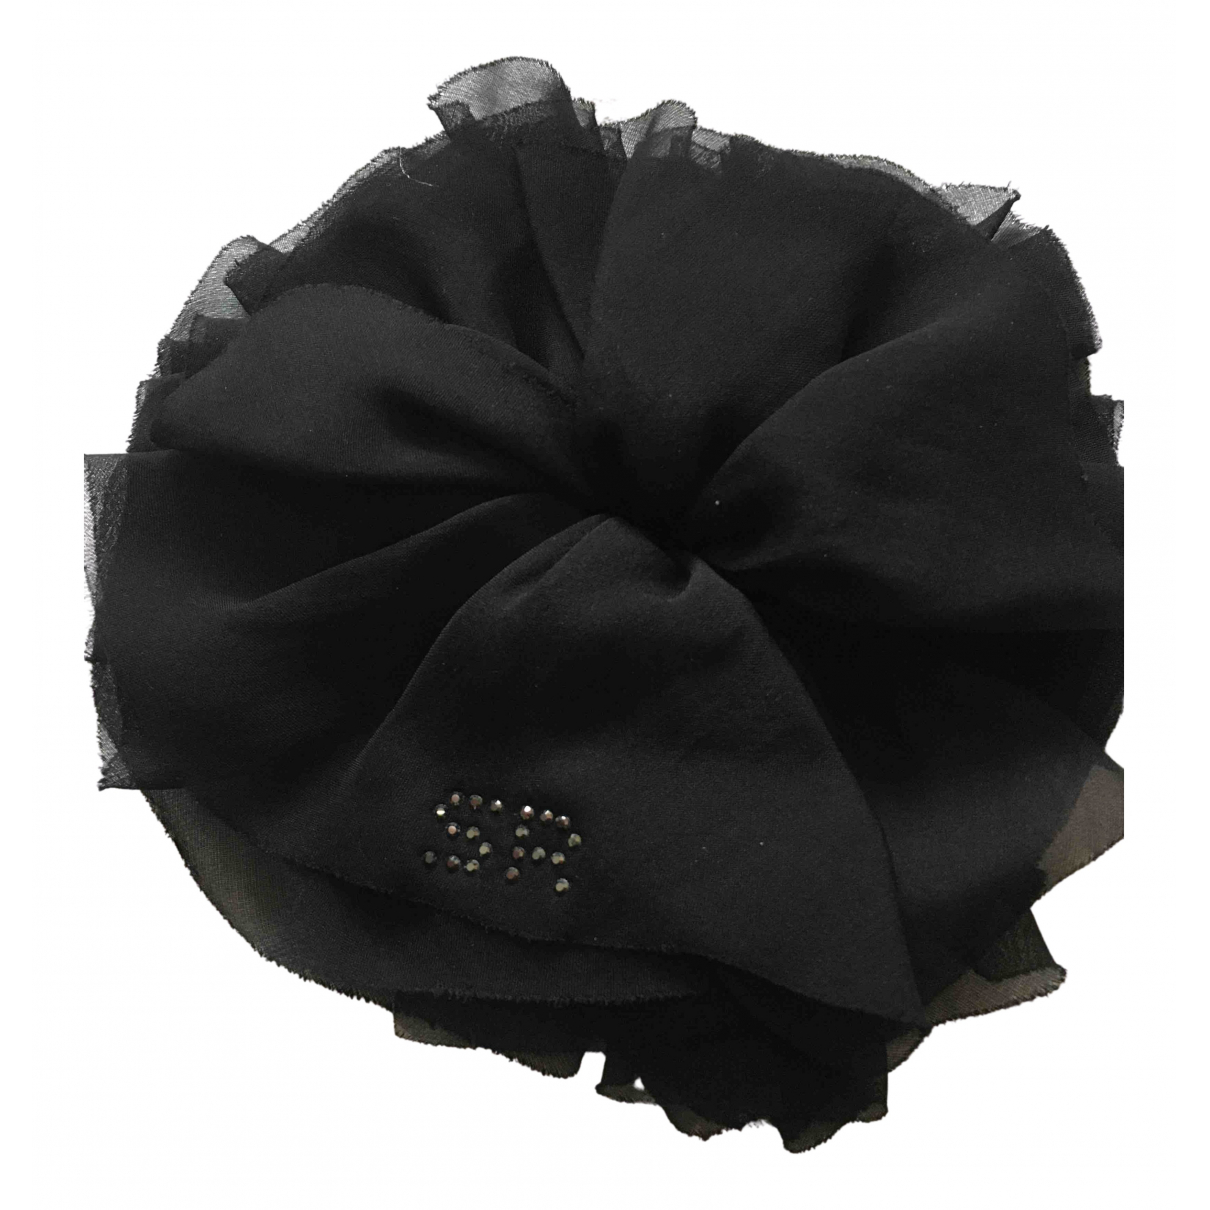 Sonia Rykiel N Black Silk Pins & brooches for Women N